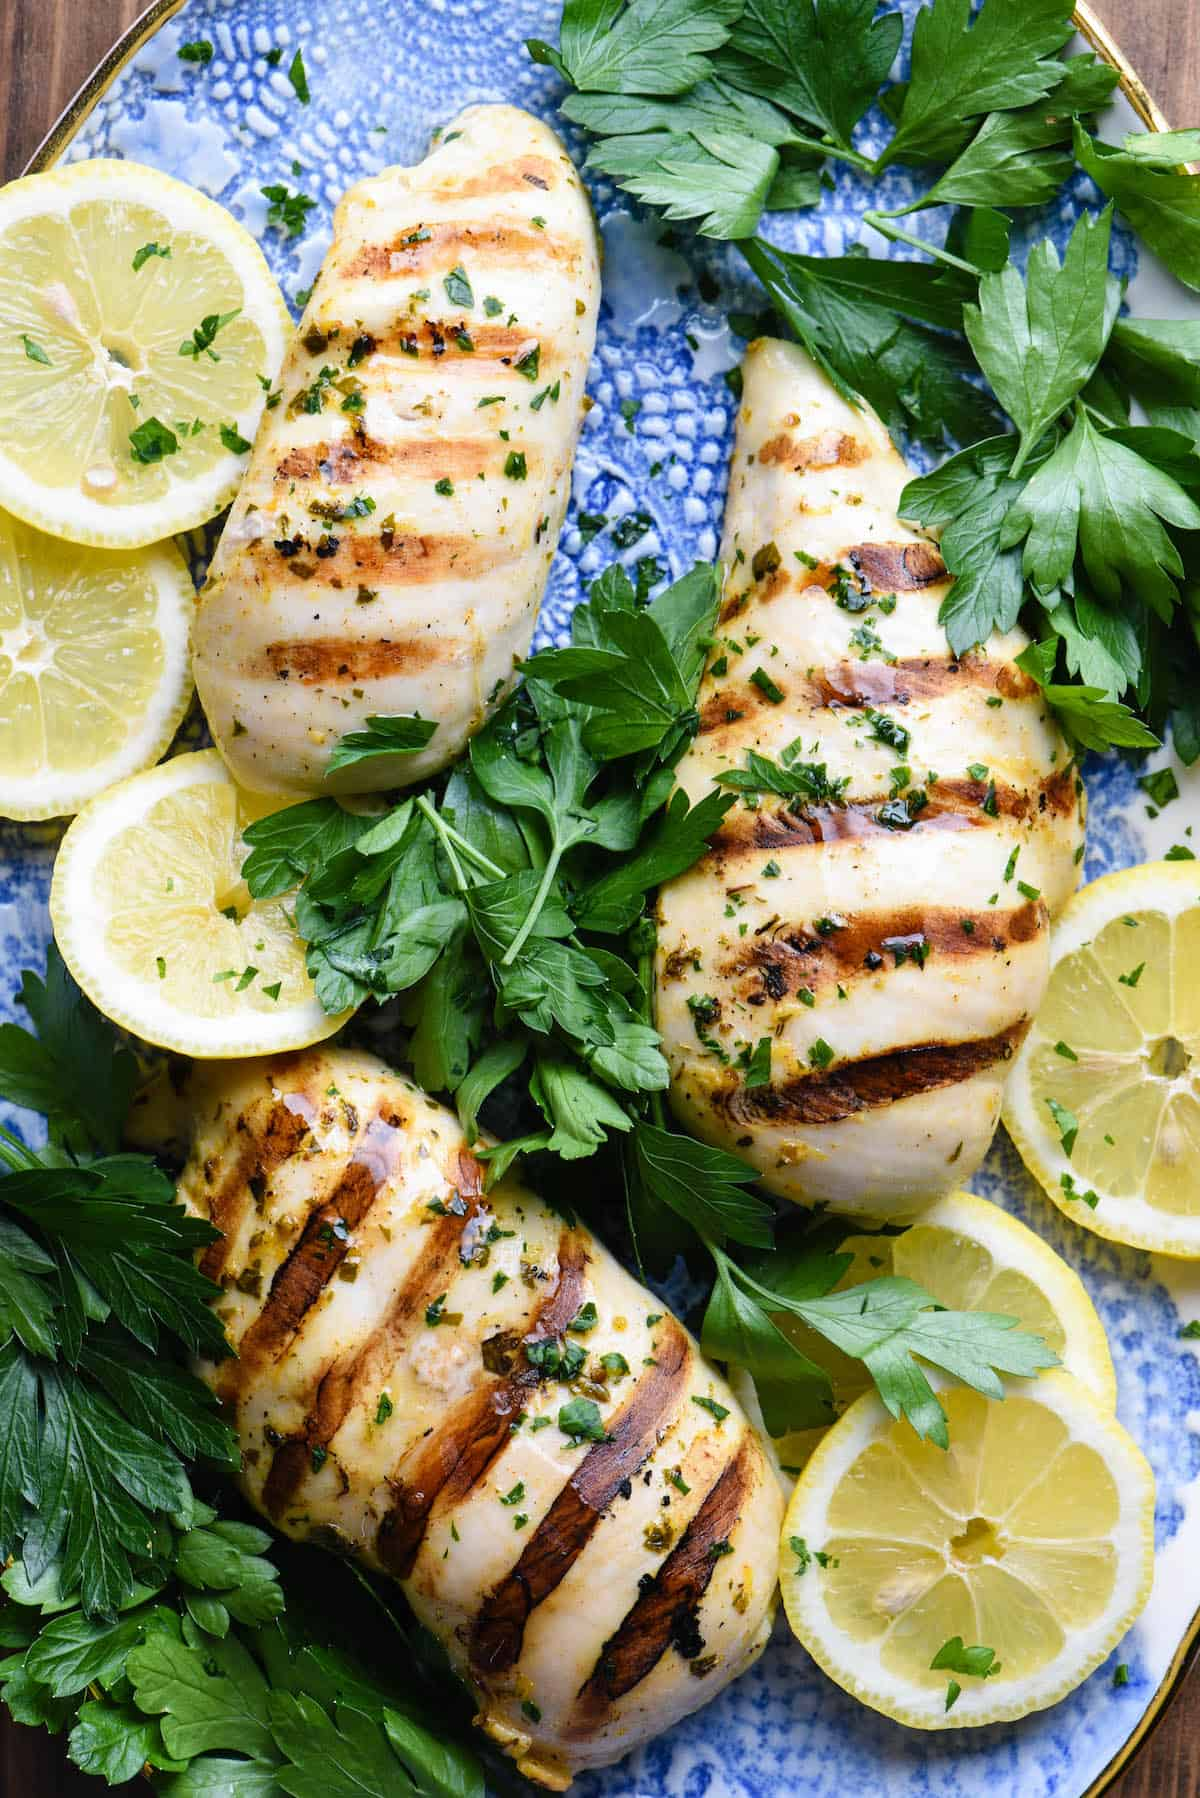 Cooked chicken pieces on pretty blue platter with herbs and lemons slices.